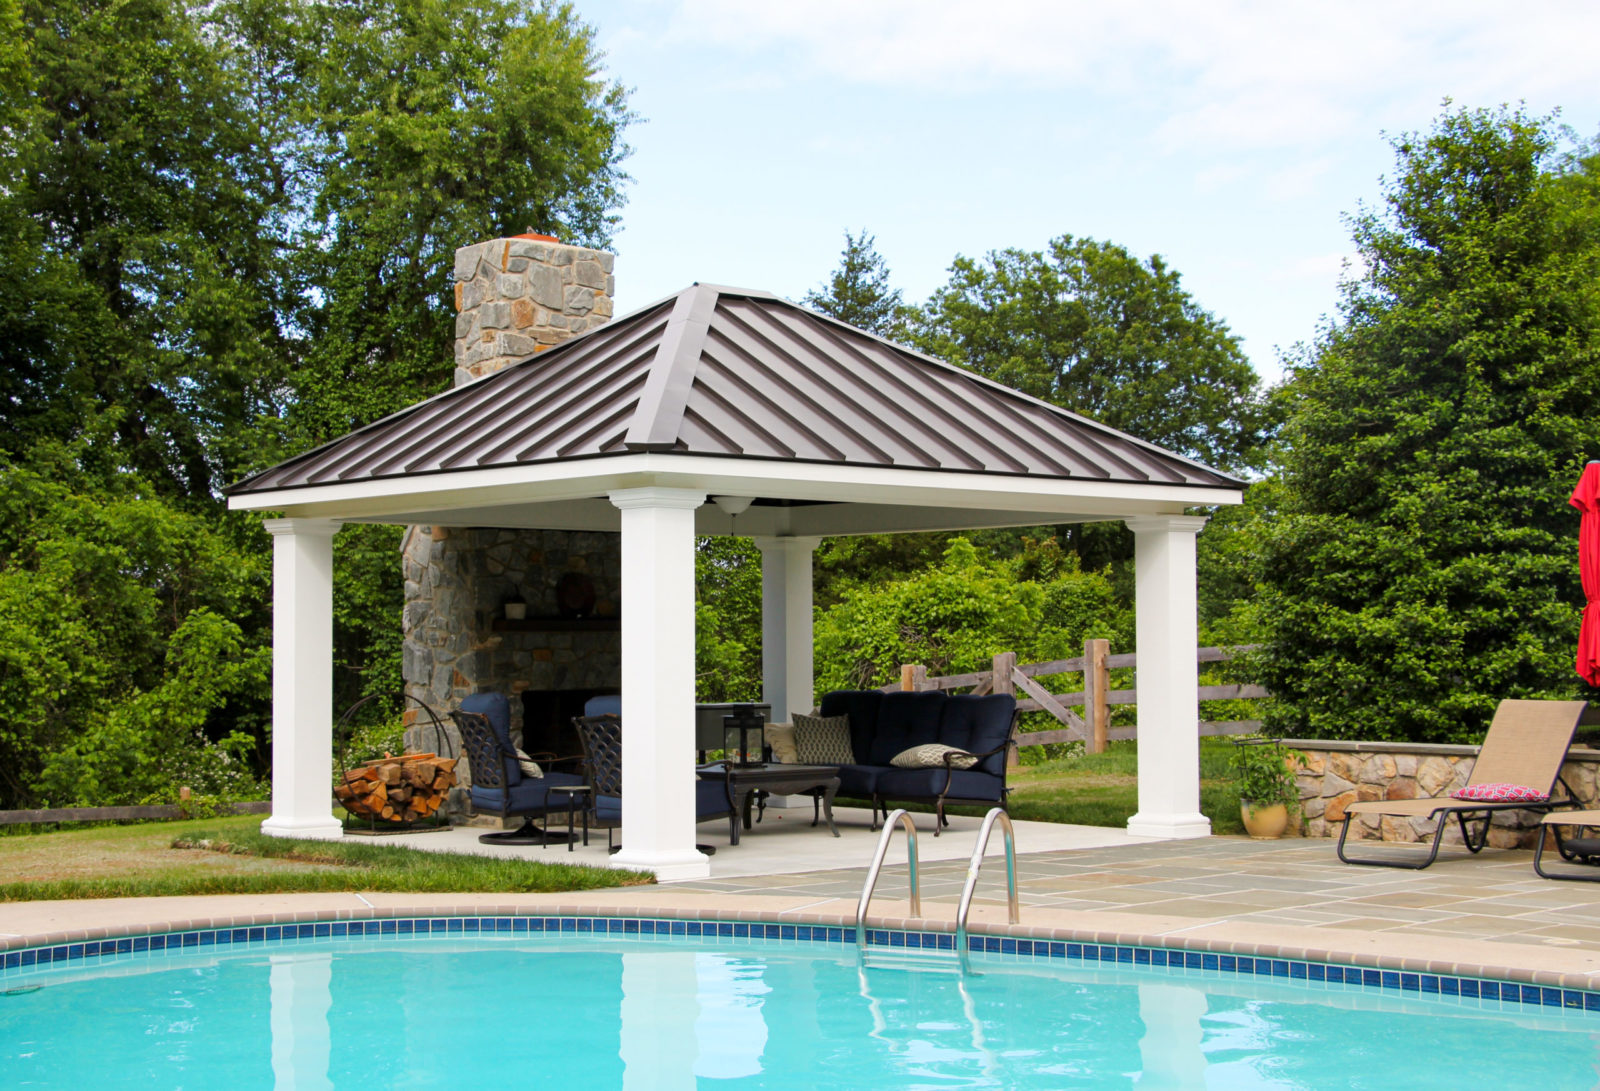 poolside amish pavilion great for parties